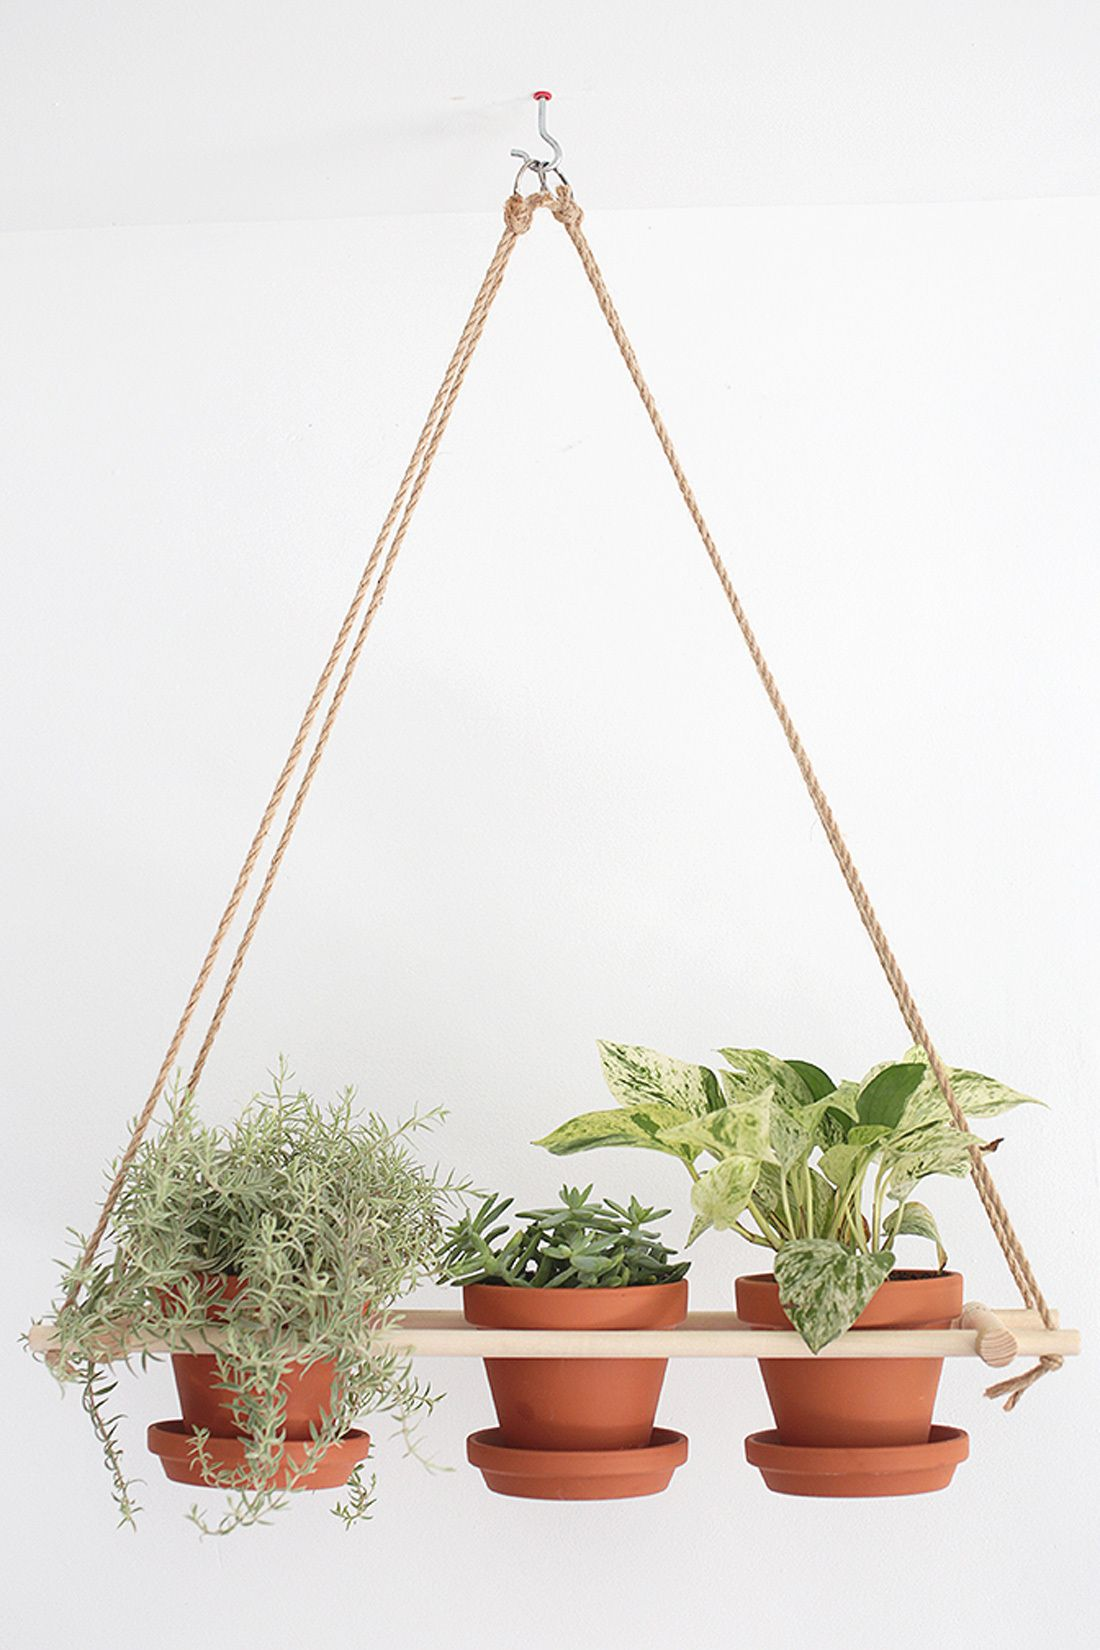 13 DIY Hanging Planters to Give Your Indoor Garden a Lift | Diy ...